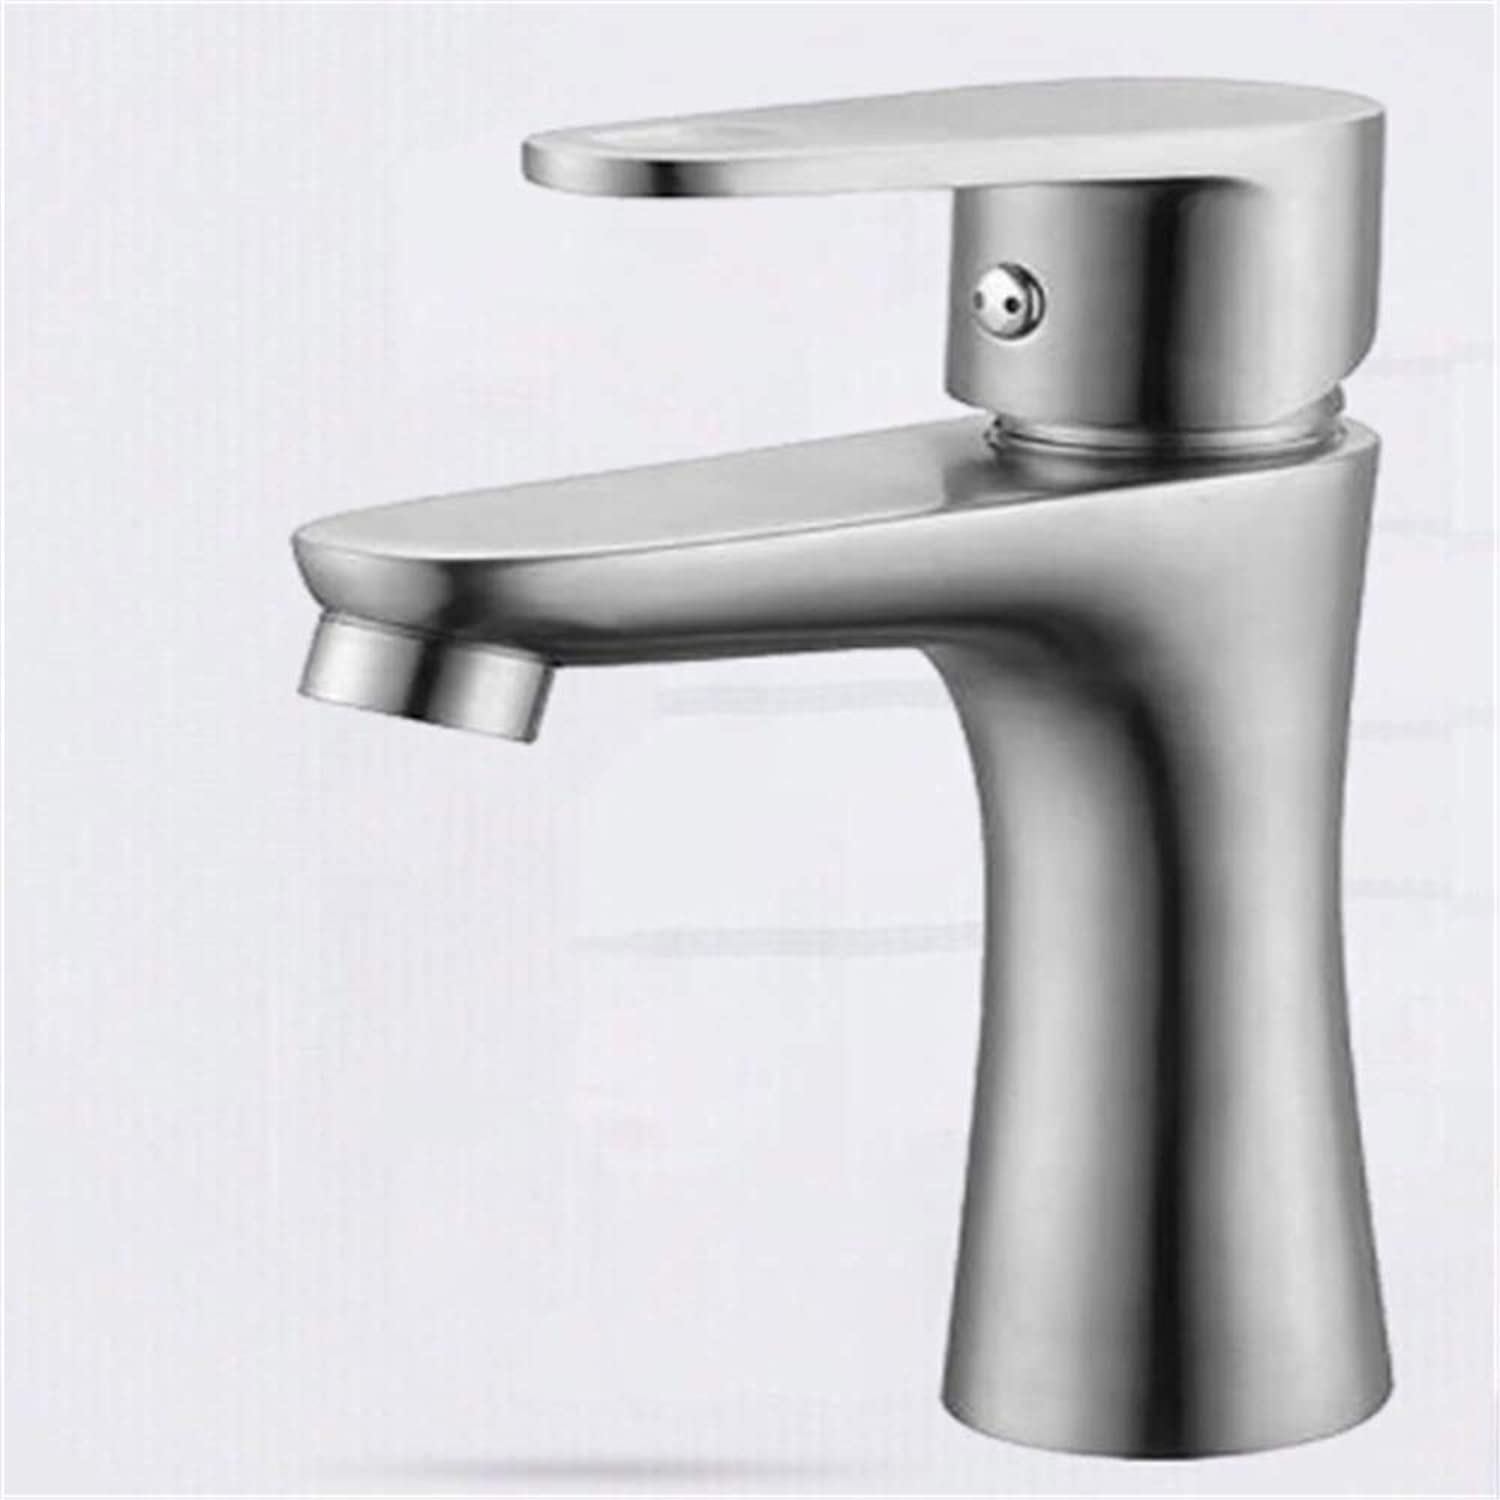 Water Tap Kitchen Faucet Tapstainless Steelkitchen Faucet Prostainless Steel Wire Drawing Basin Hot and Cold Single Hole Faucet Cold and Hot Faucet Bath Faucet Basin Faucet